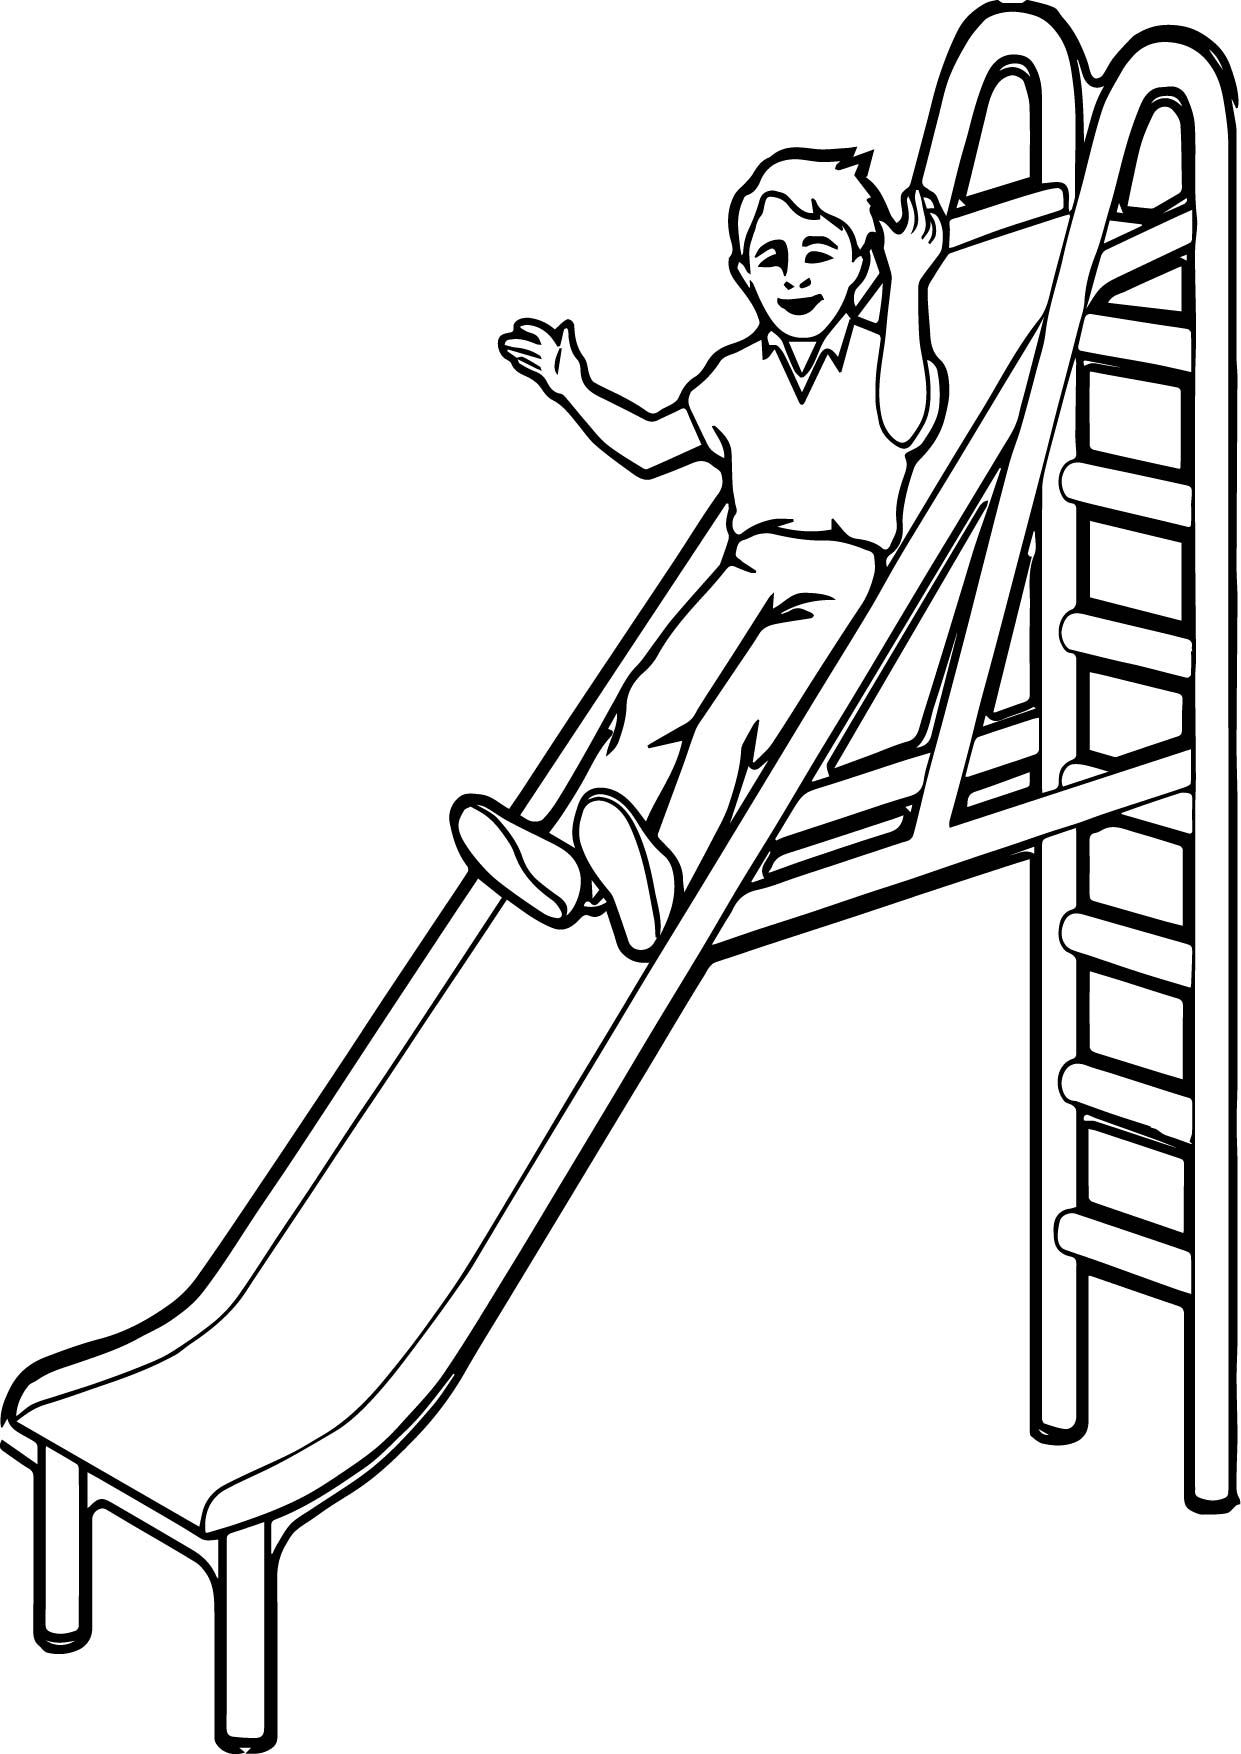 Awesome Playground Slide Kid Coloring Page Coloring Pages For